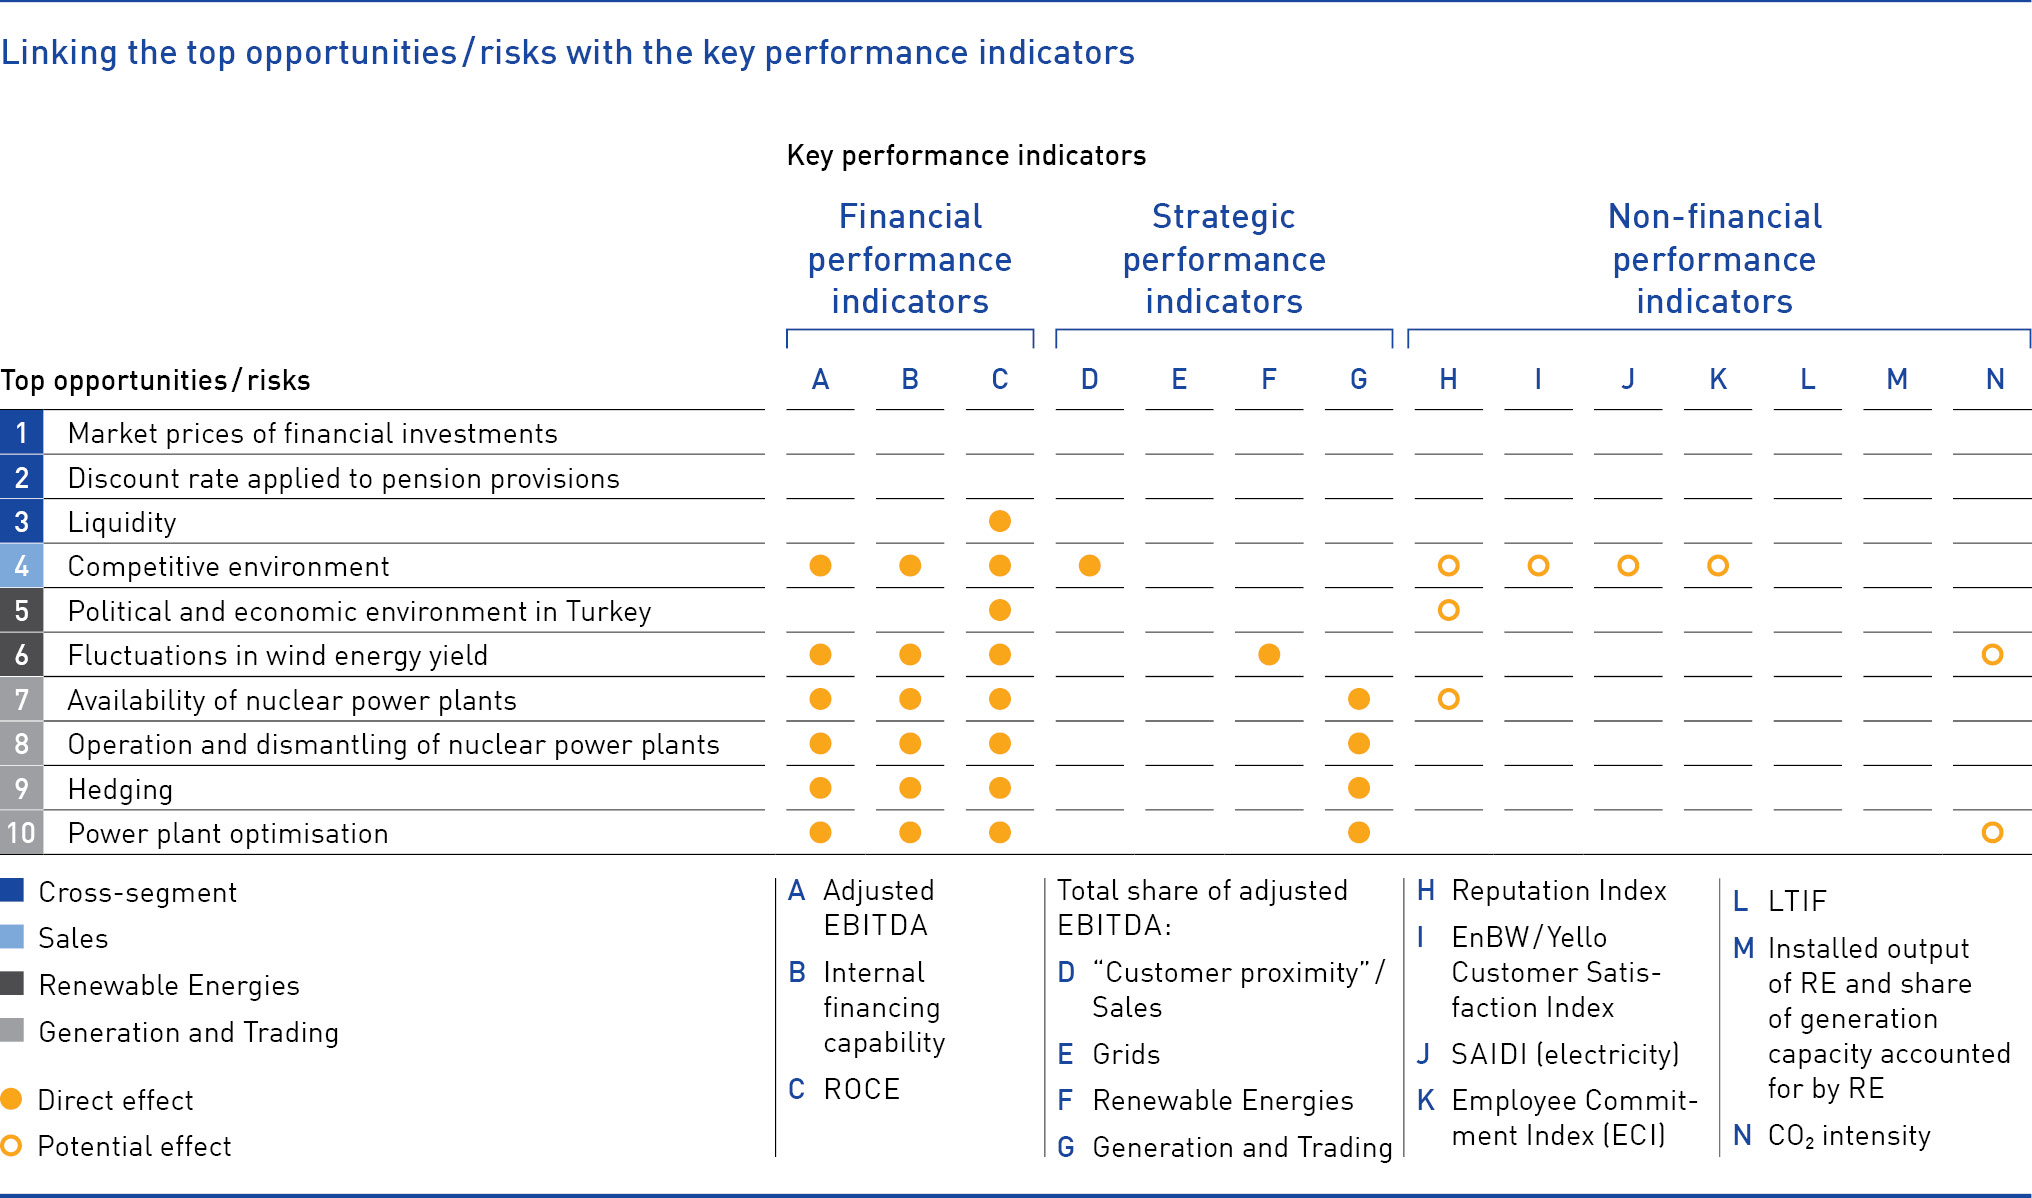 Linking the top opportunities, risks with the key performance indicators